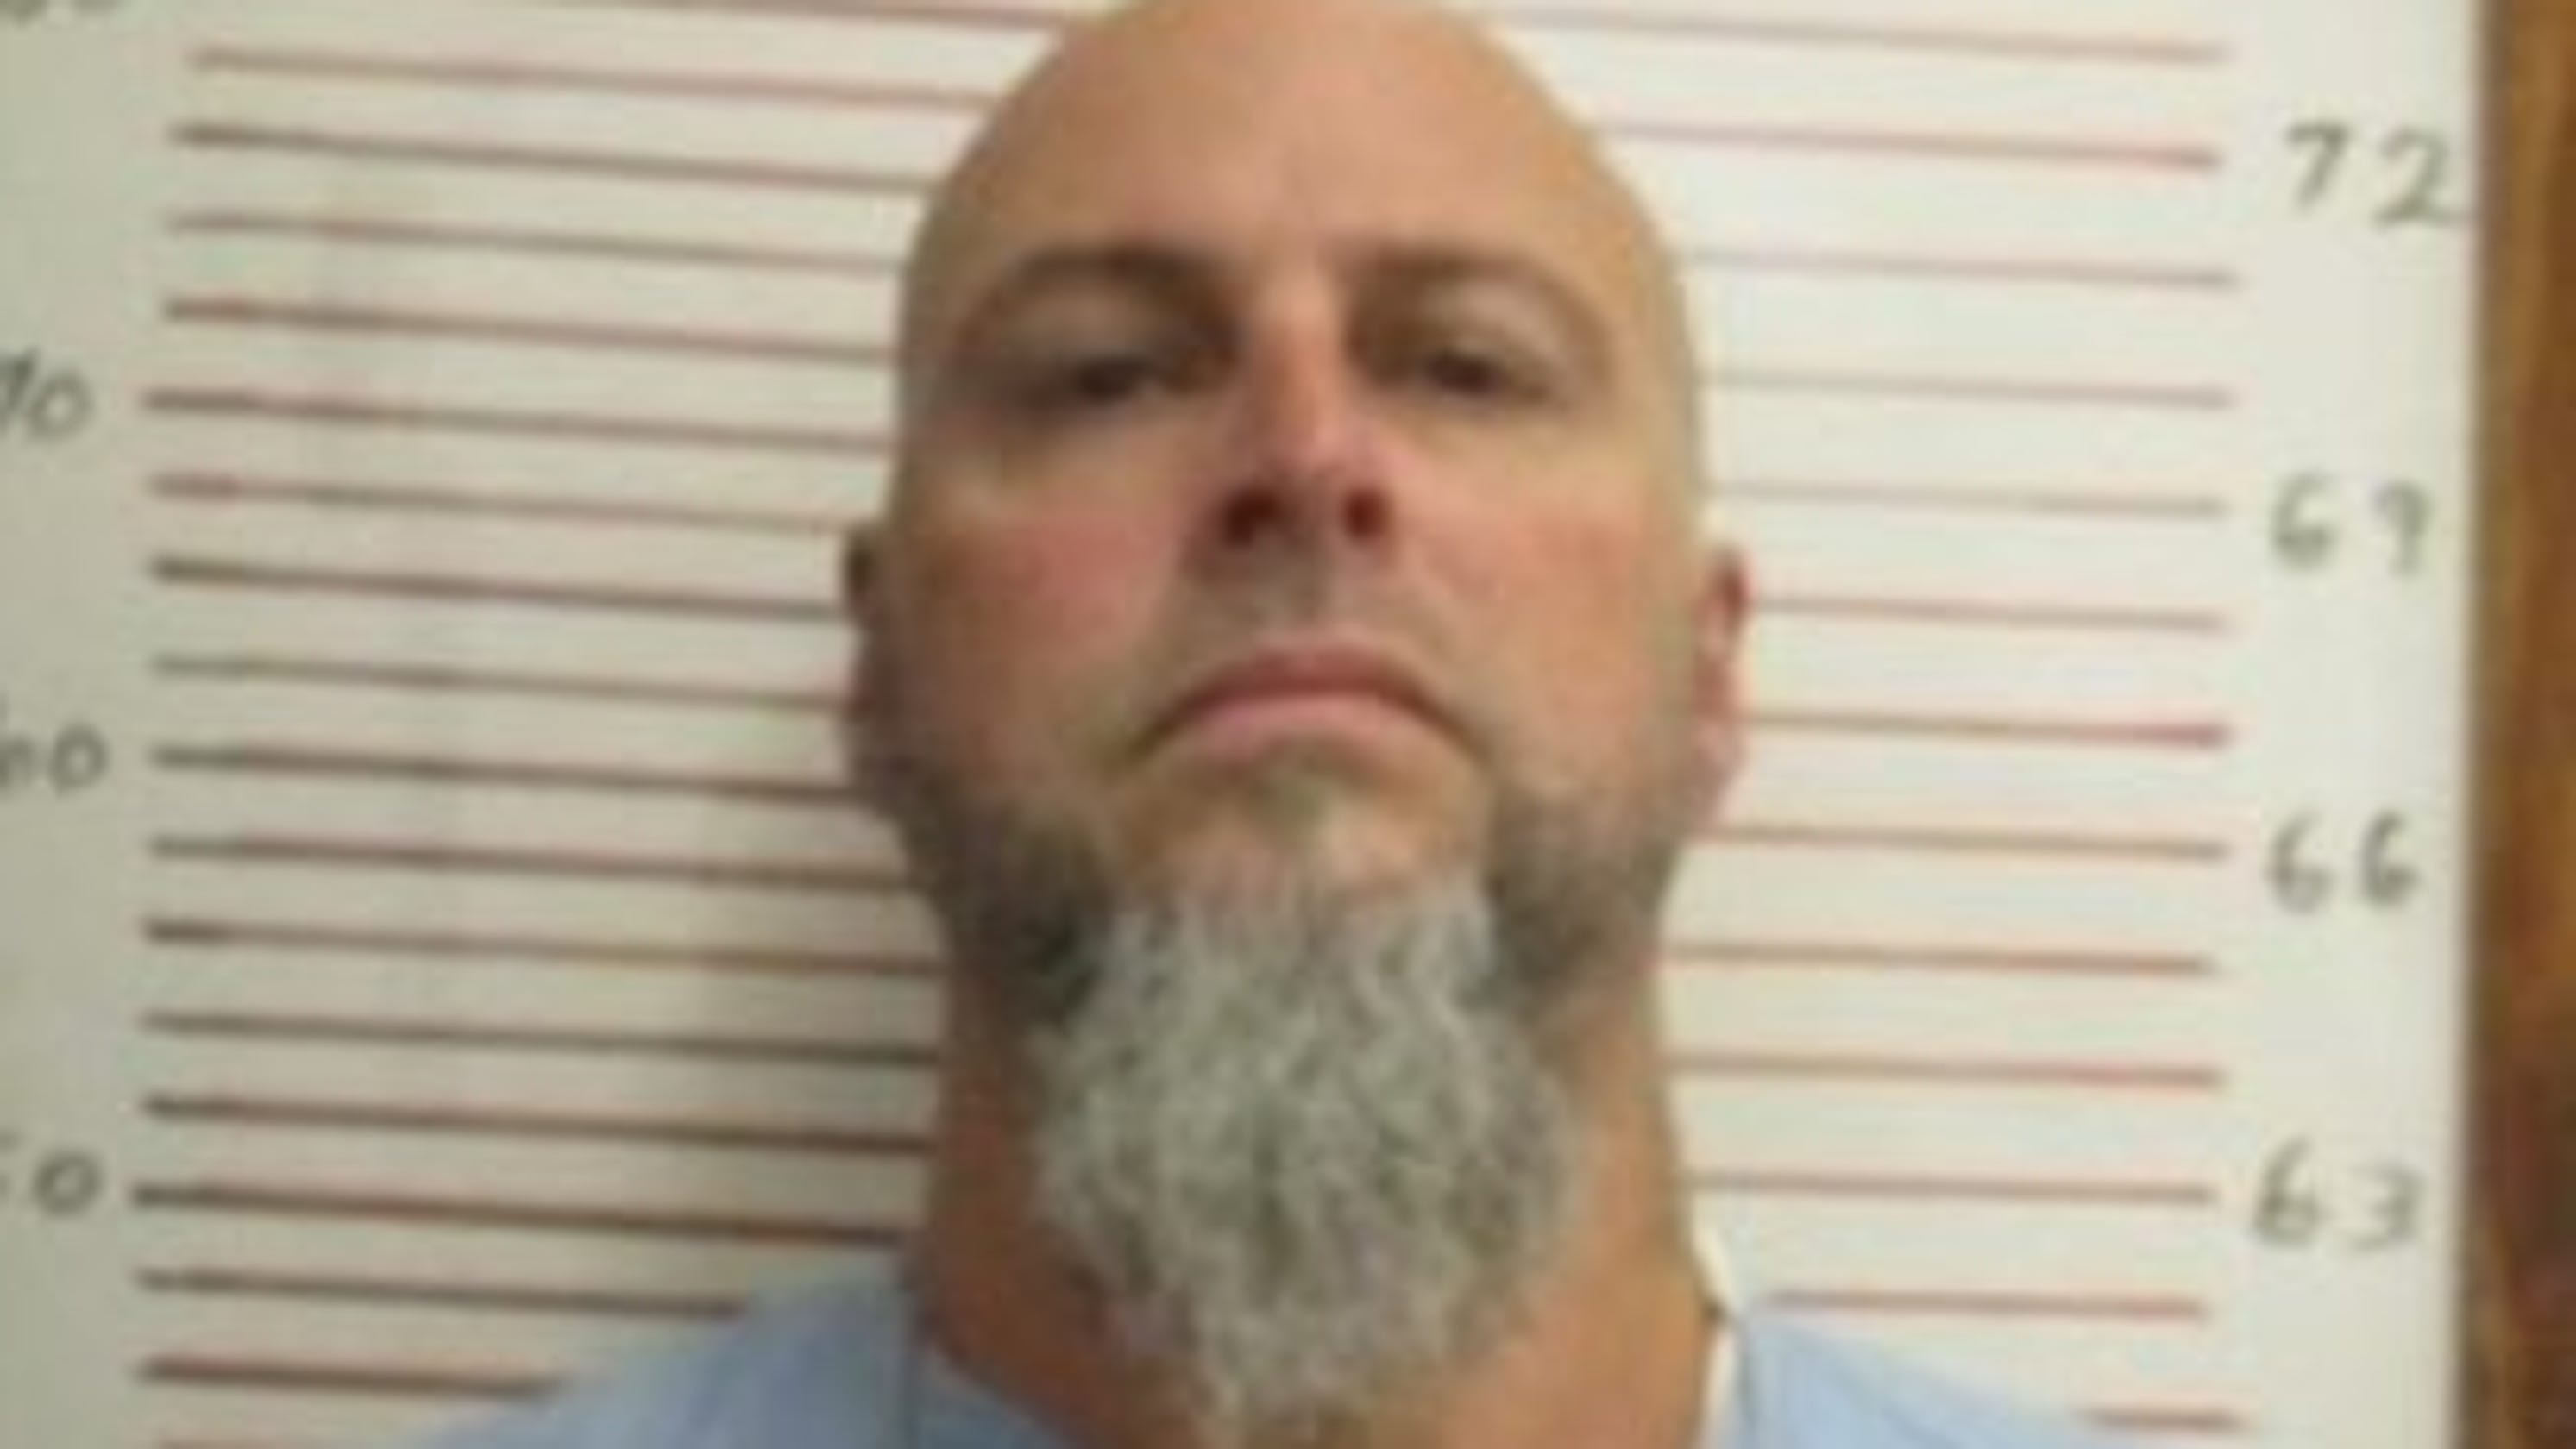 Blue Alert: Henning Tennessee inmate Curtis Ray Watson